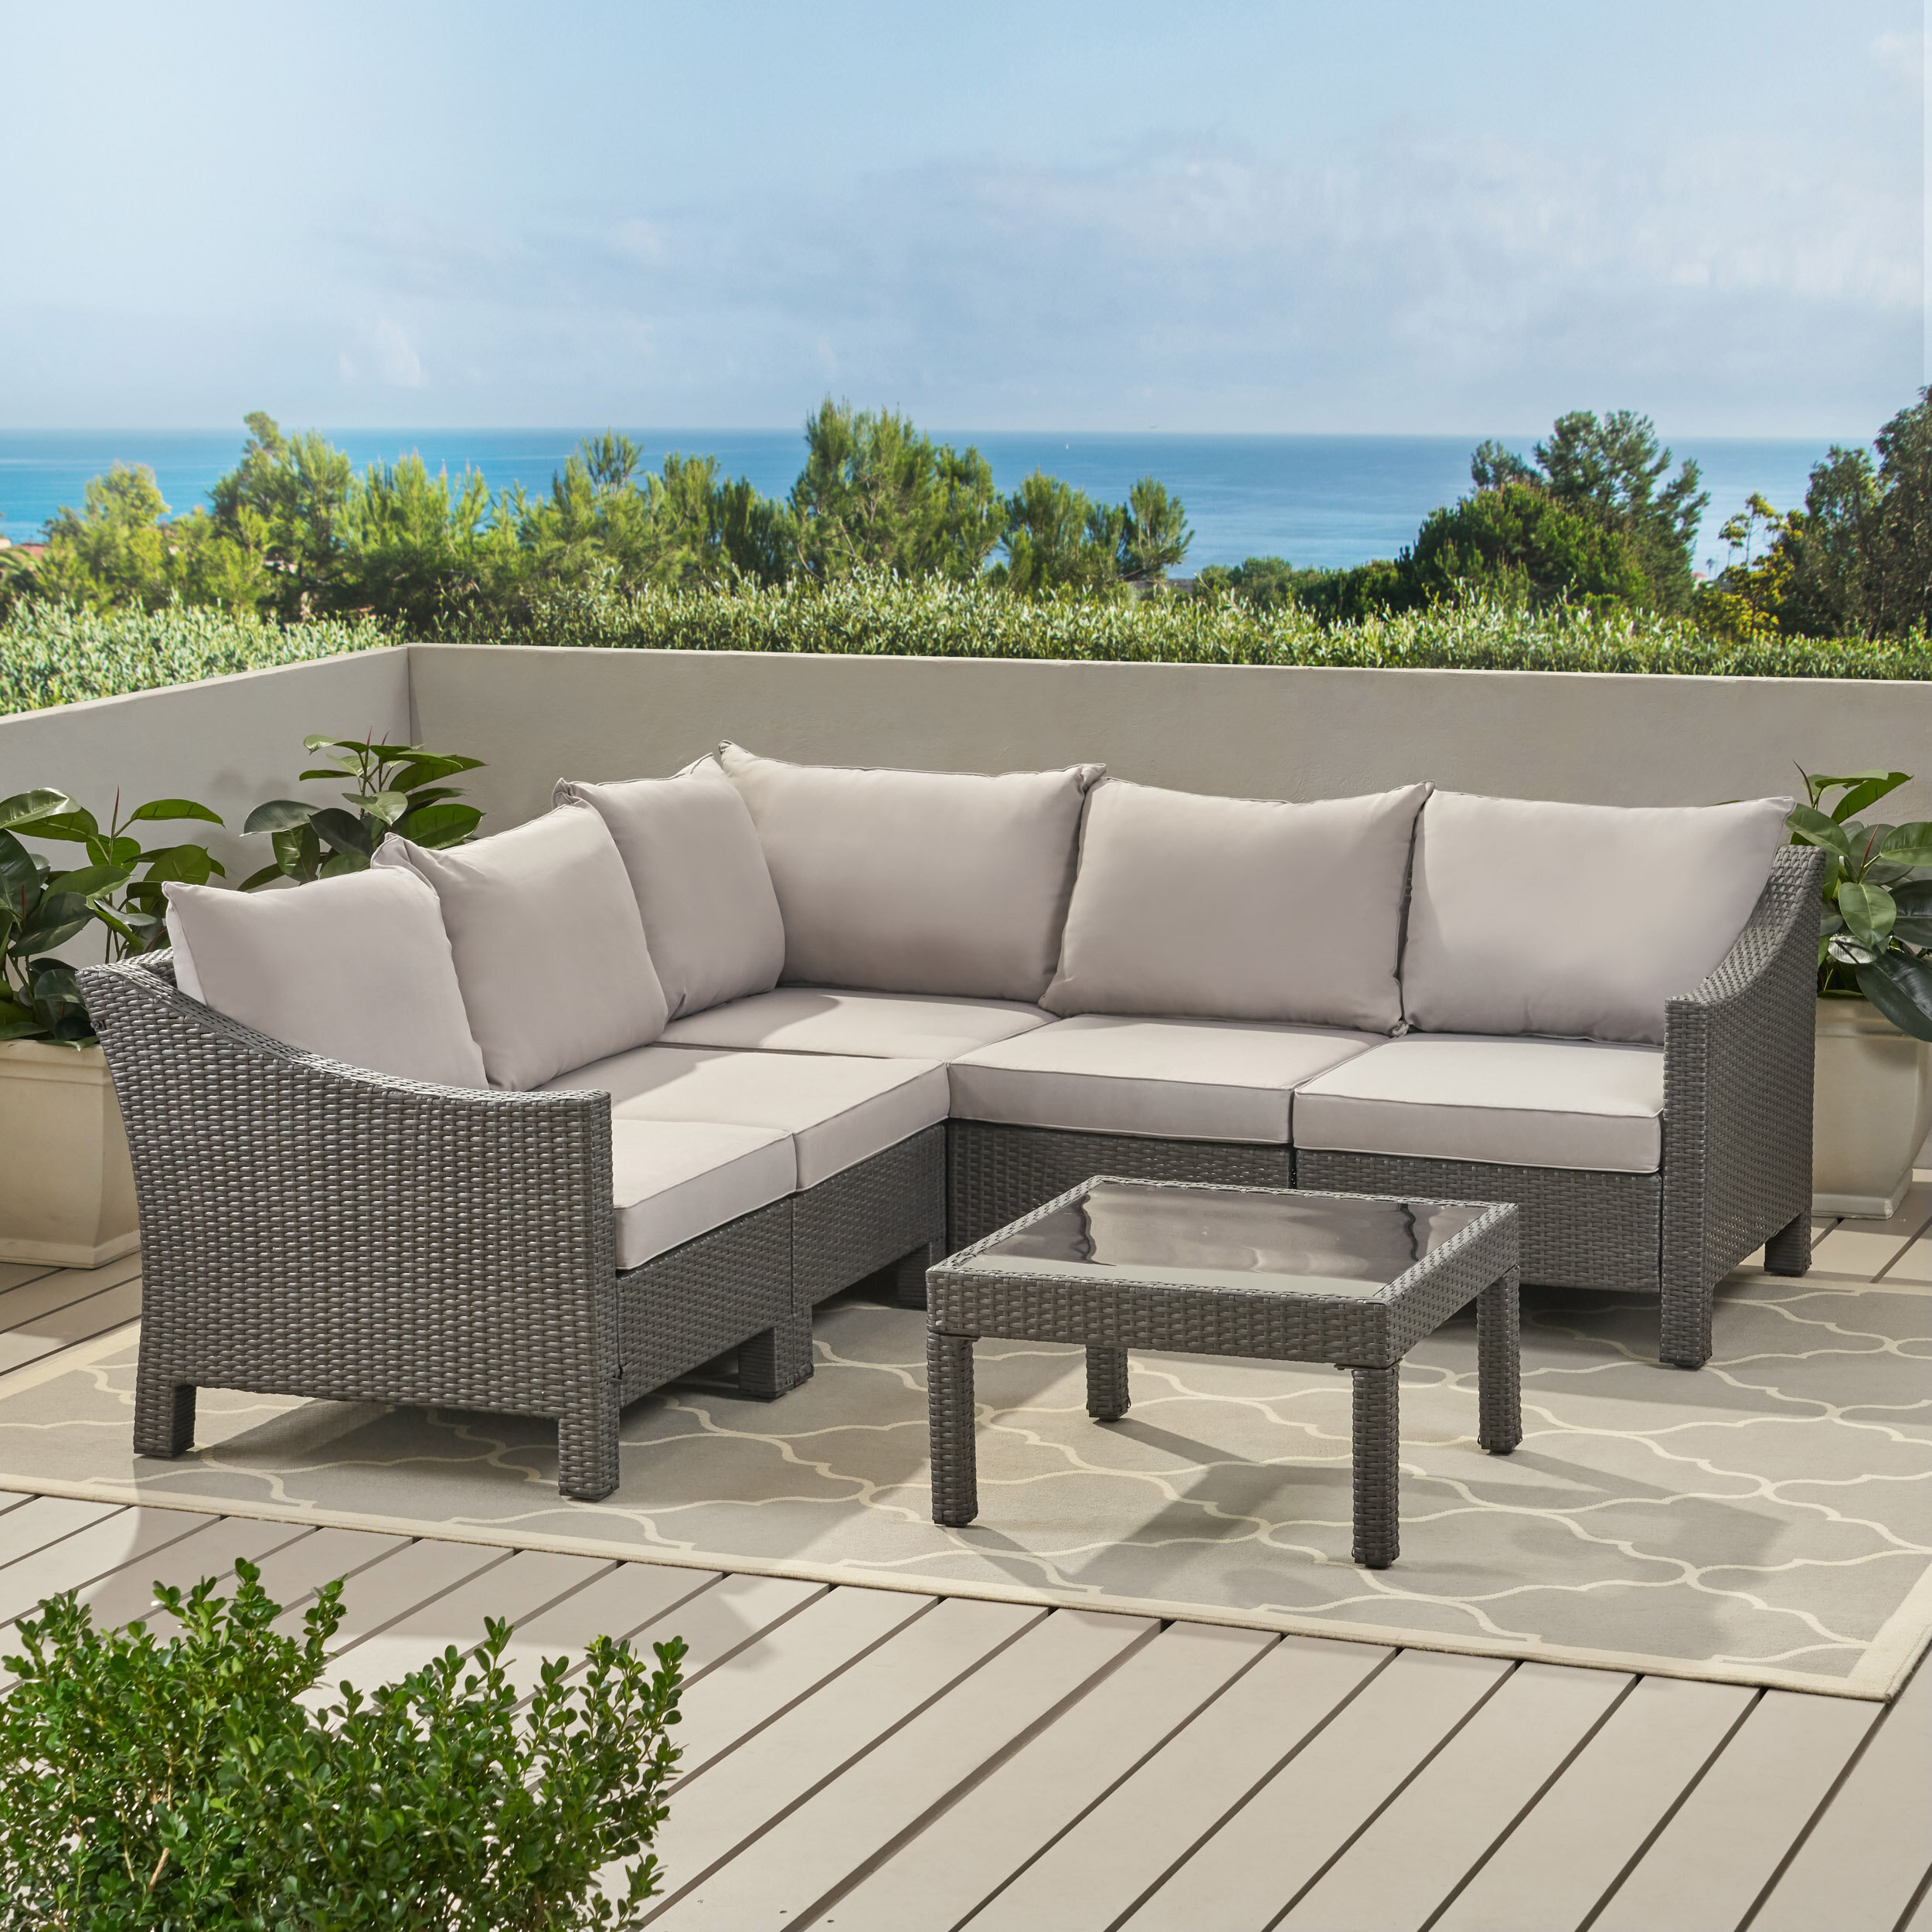 Sol 72 Outdoor Coast 6 Piece Rattan Sectional Seating Group With Cushions Reviews Wayfair